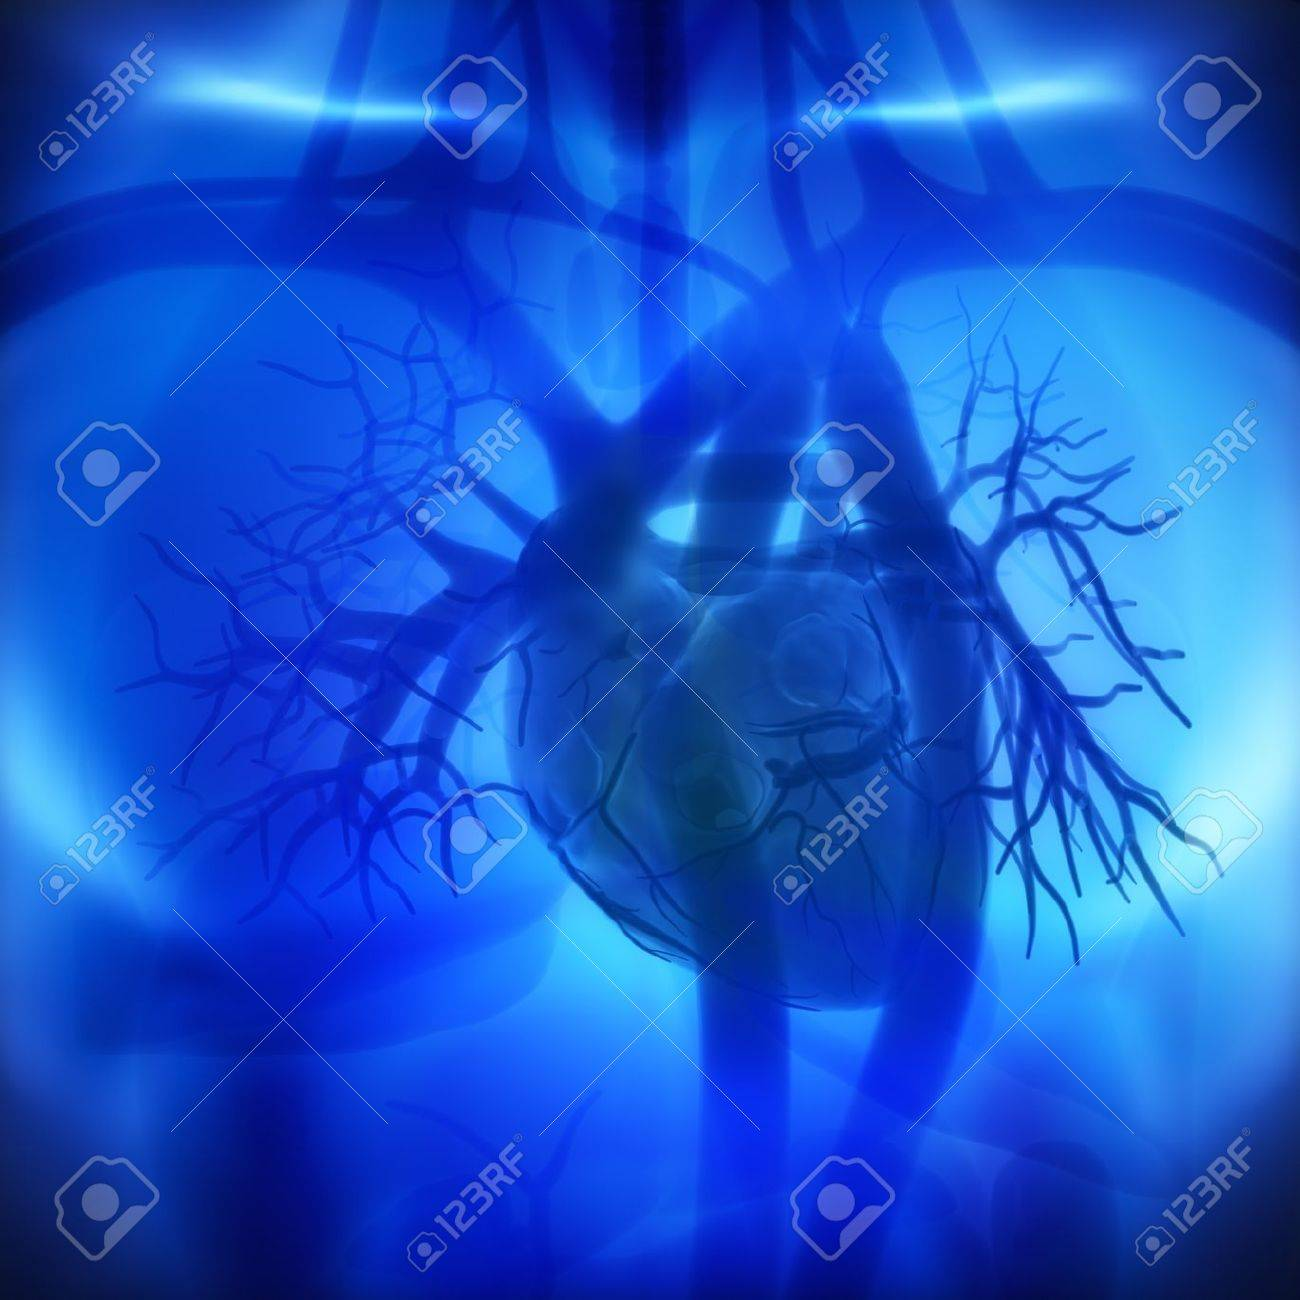 Coronary Arteries Auricles Ventricles In Human Heart Stock Photo